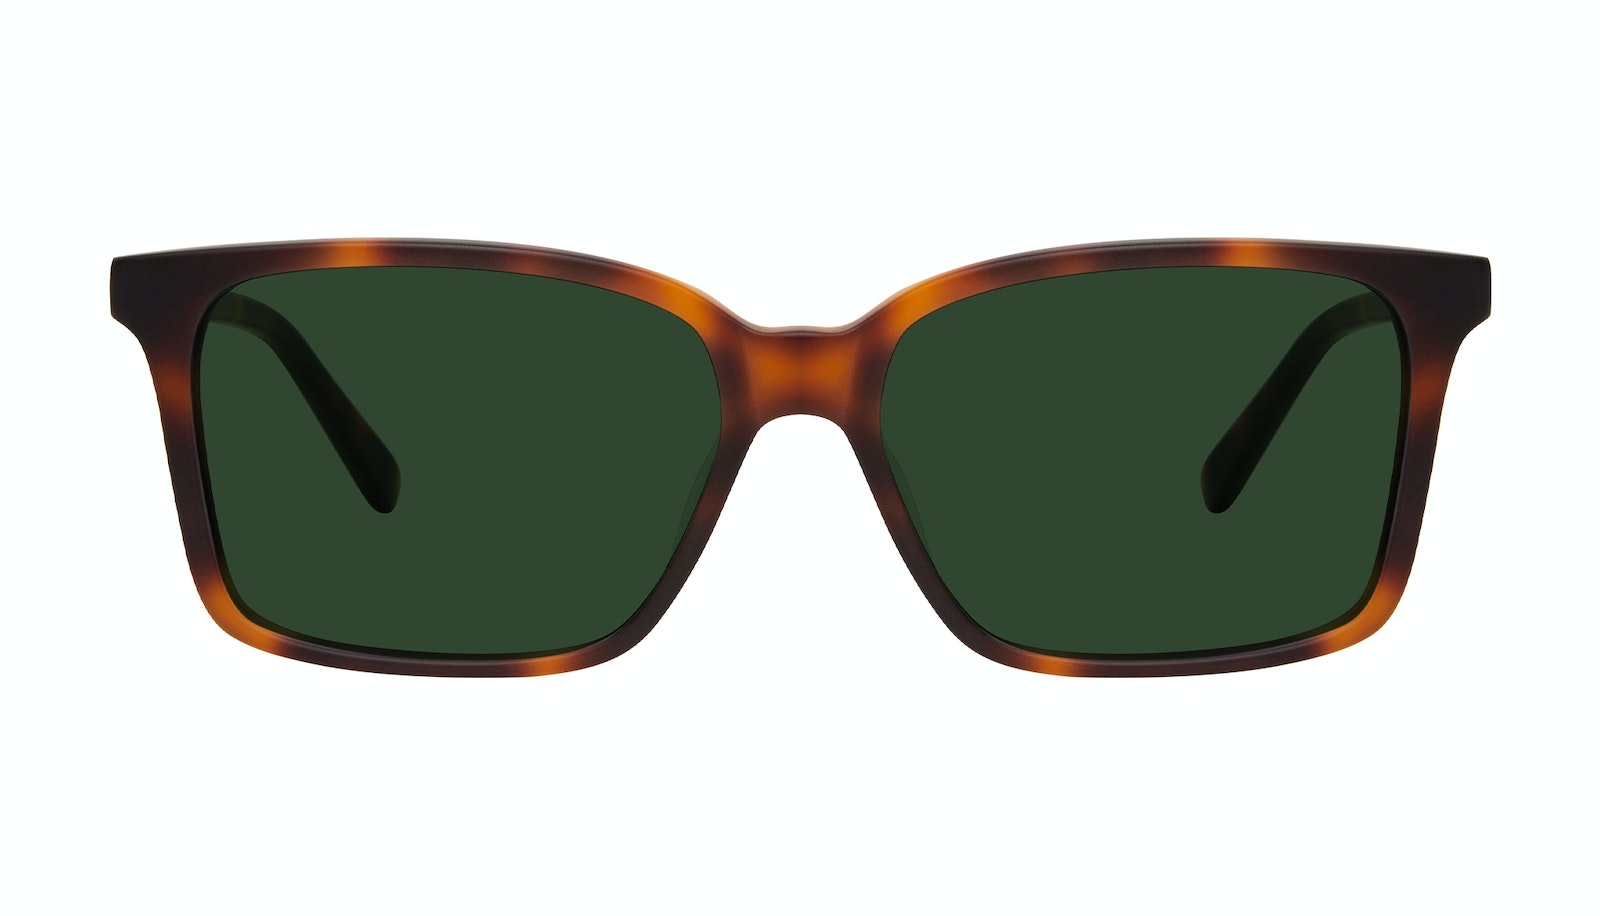 Affordable Fashion Glasses Square Sunglasses Men Lapel Matte Tortoise